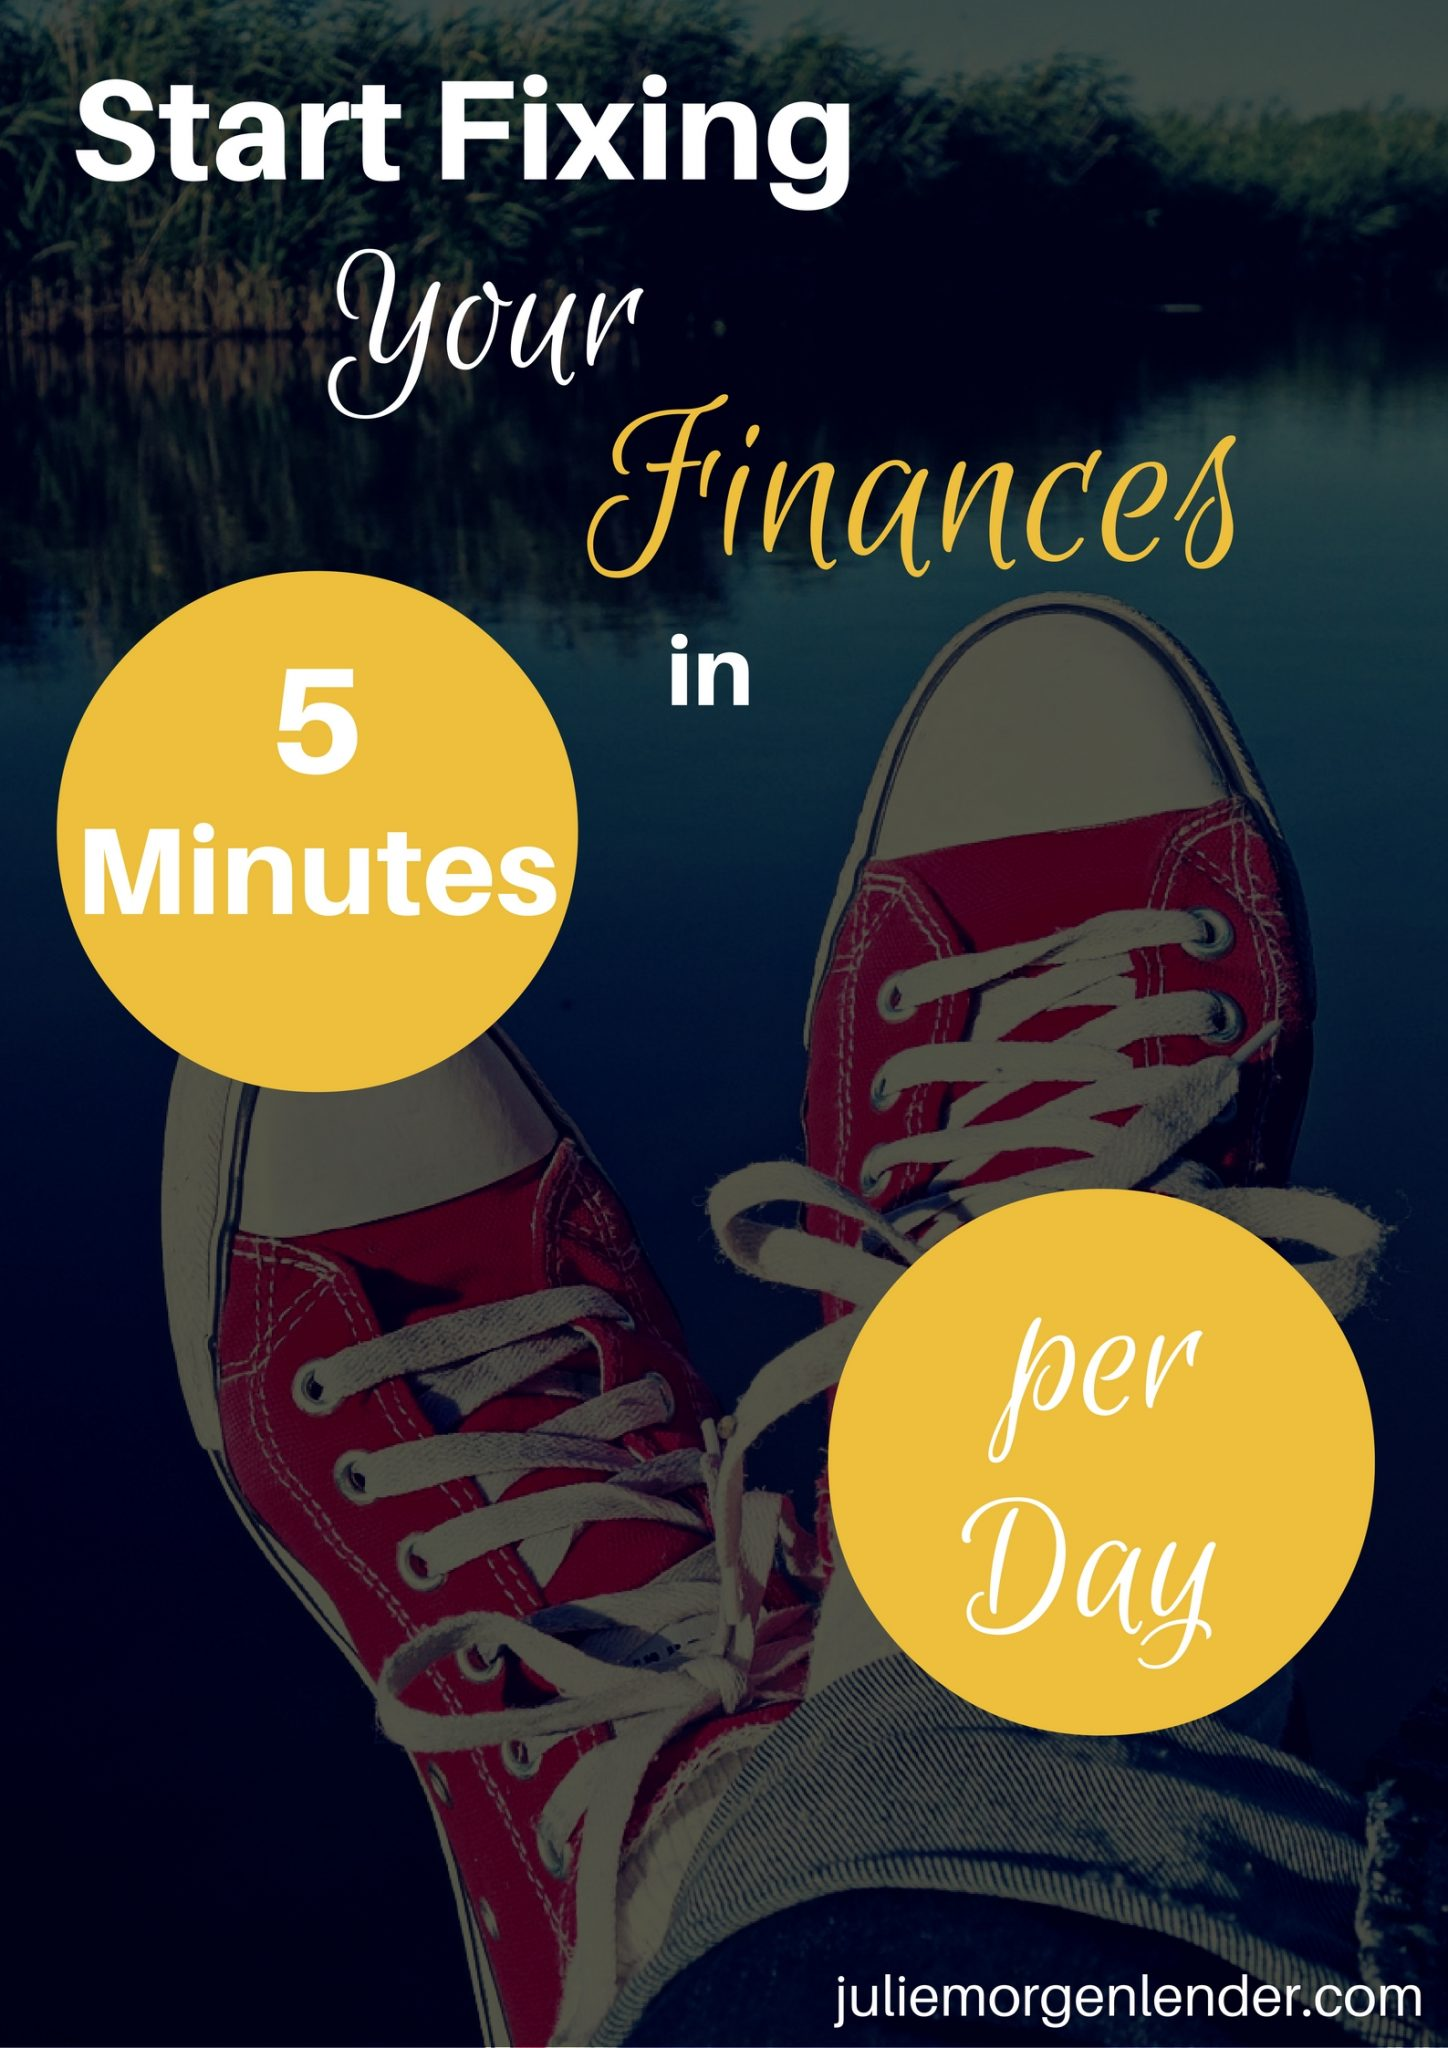 Start Fixing Your Finances In 5 Minutes Per Day